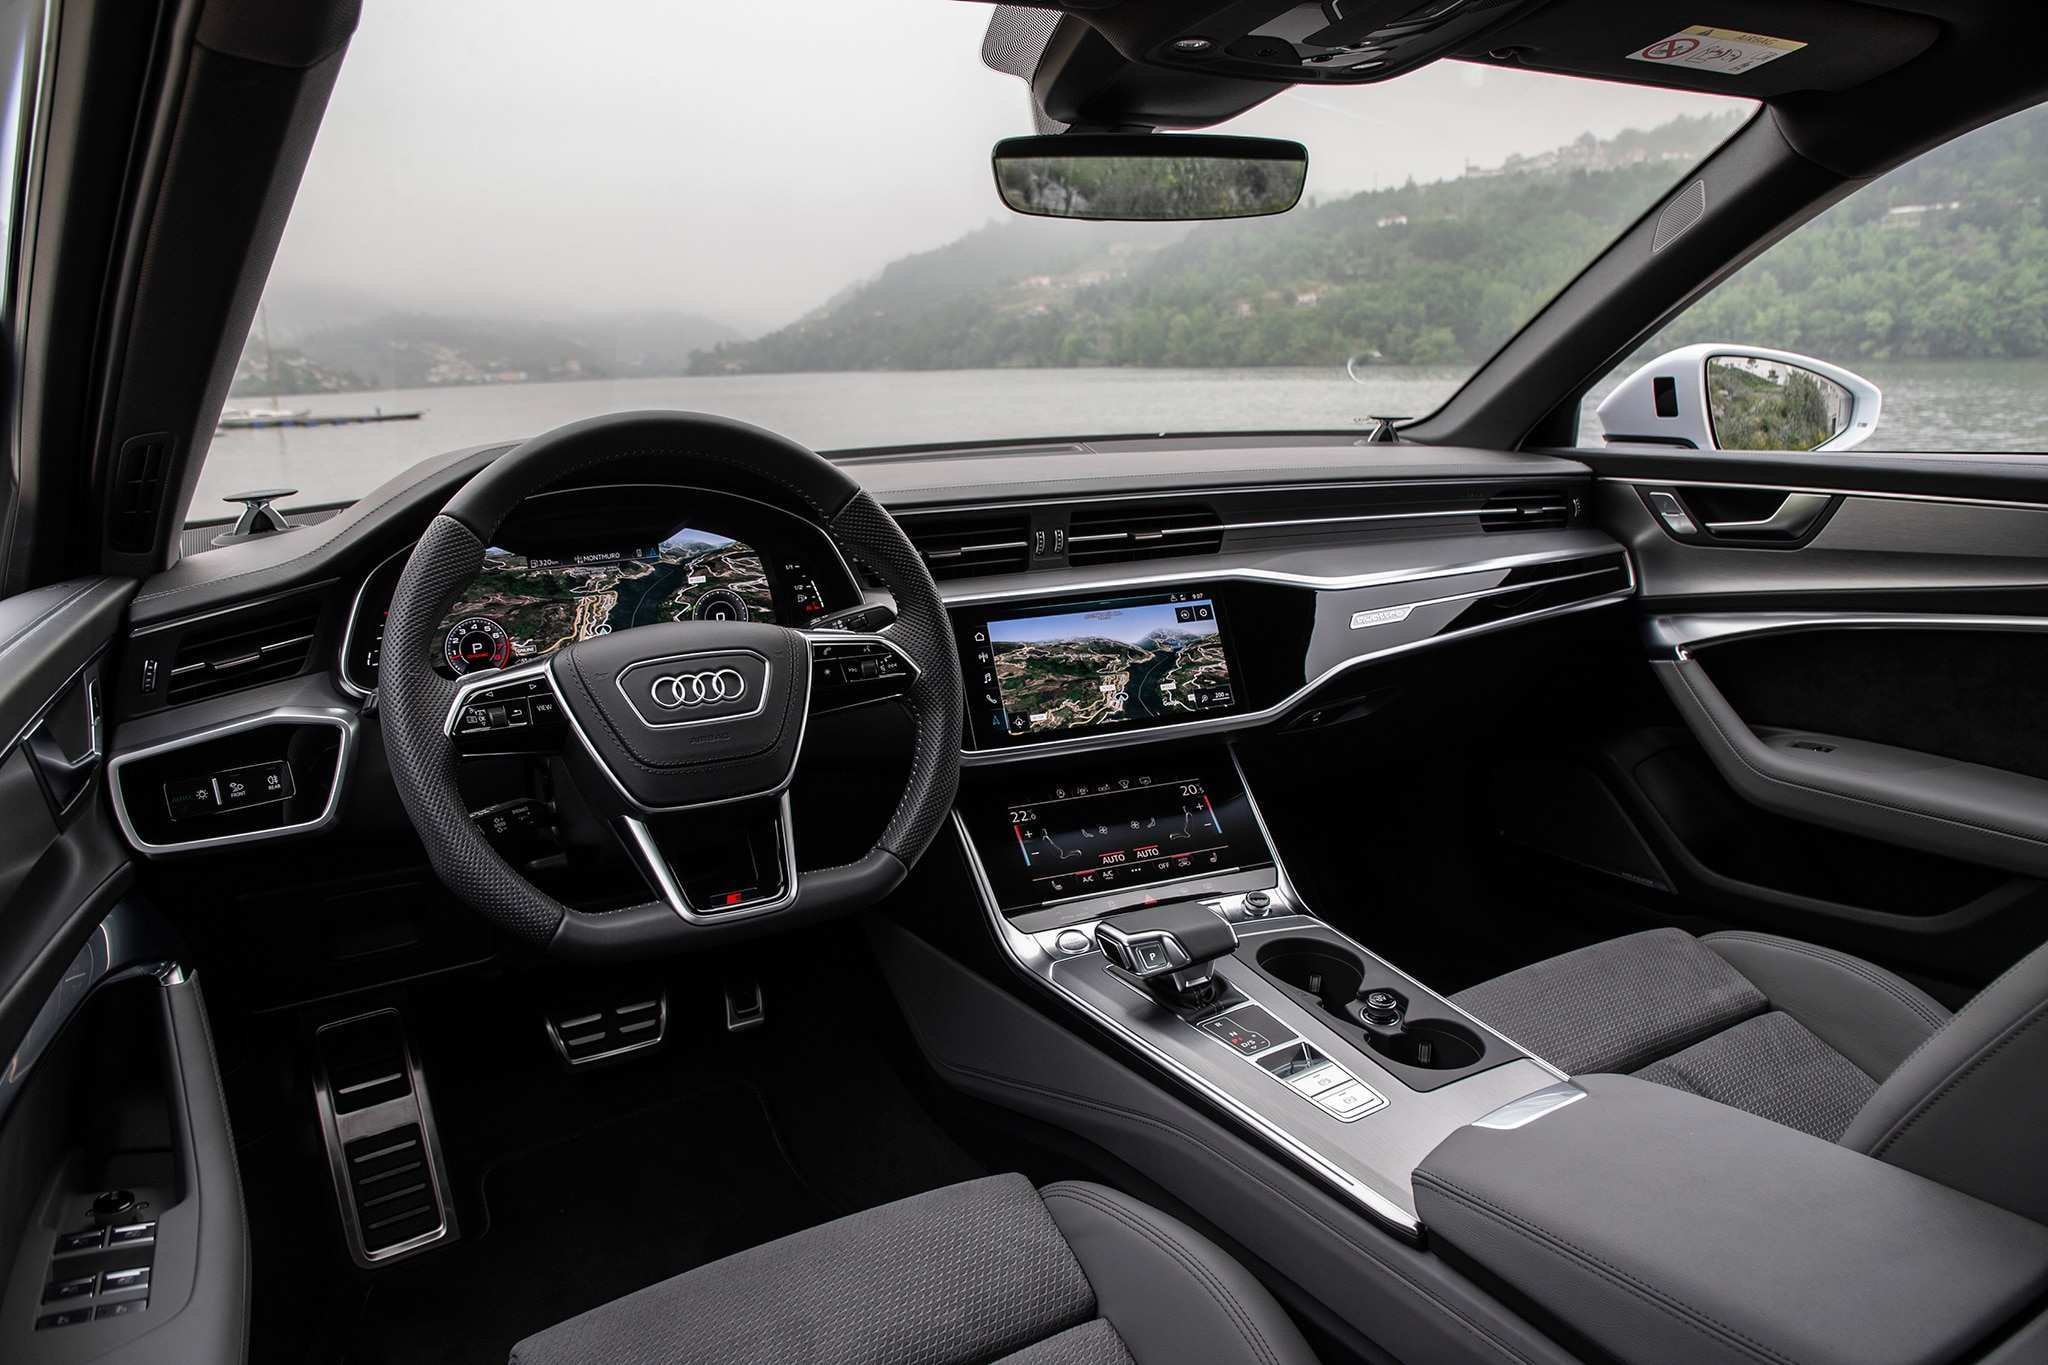 88 Best Review Best A6 Audi 2019 Interior Rumors Configurations for Best A6 Audi 2019 Interior Rumors